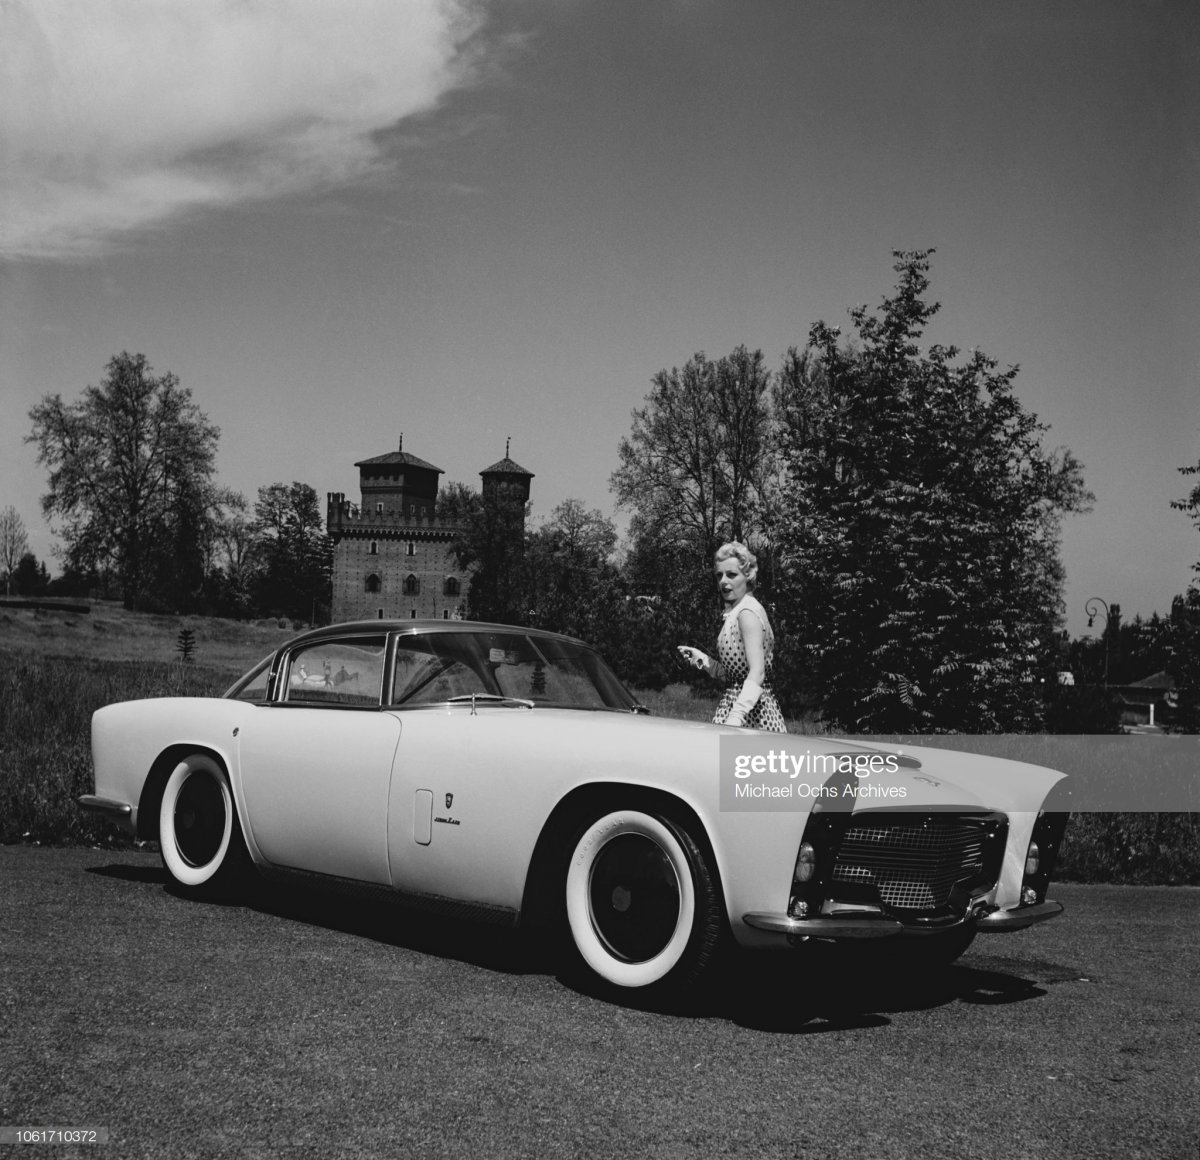 99 The Zeder Z-250, aka Dodge Storm or Bertone, May 1954. The.jpg